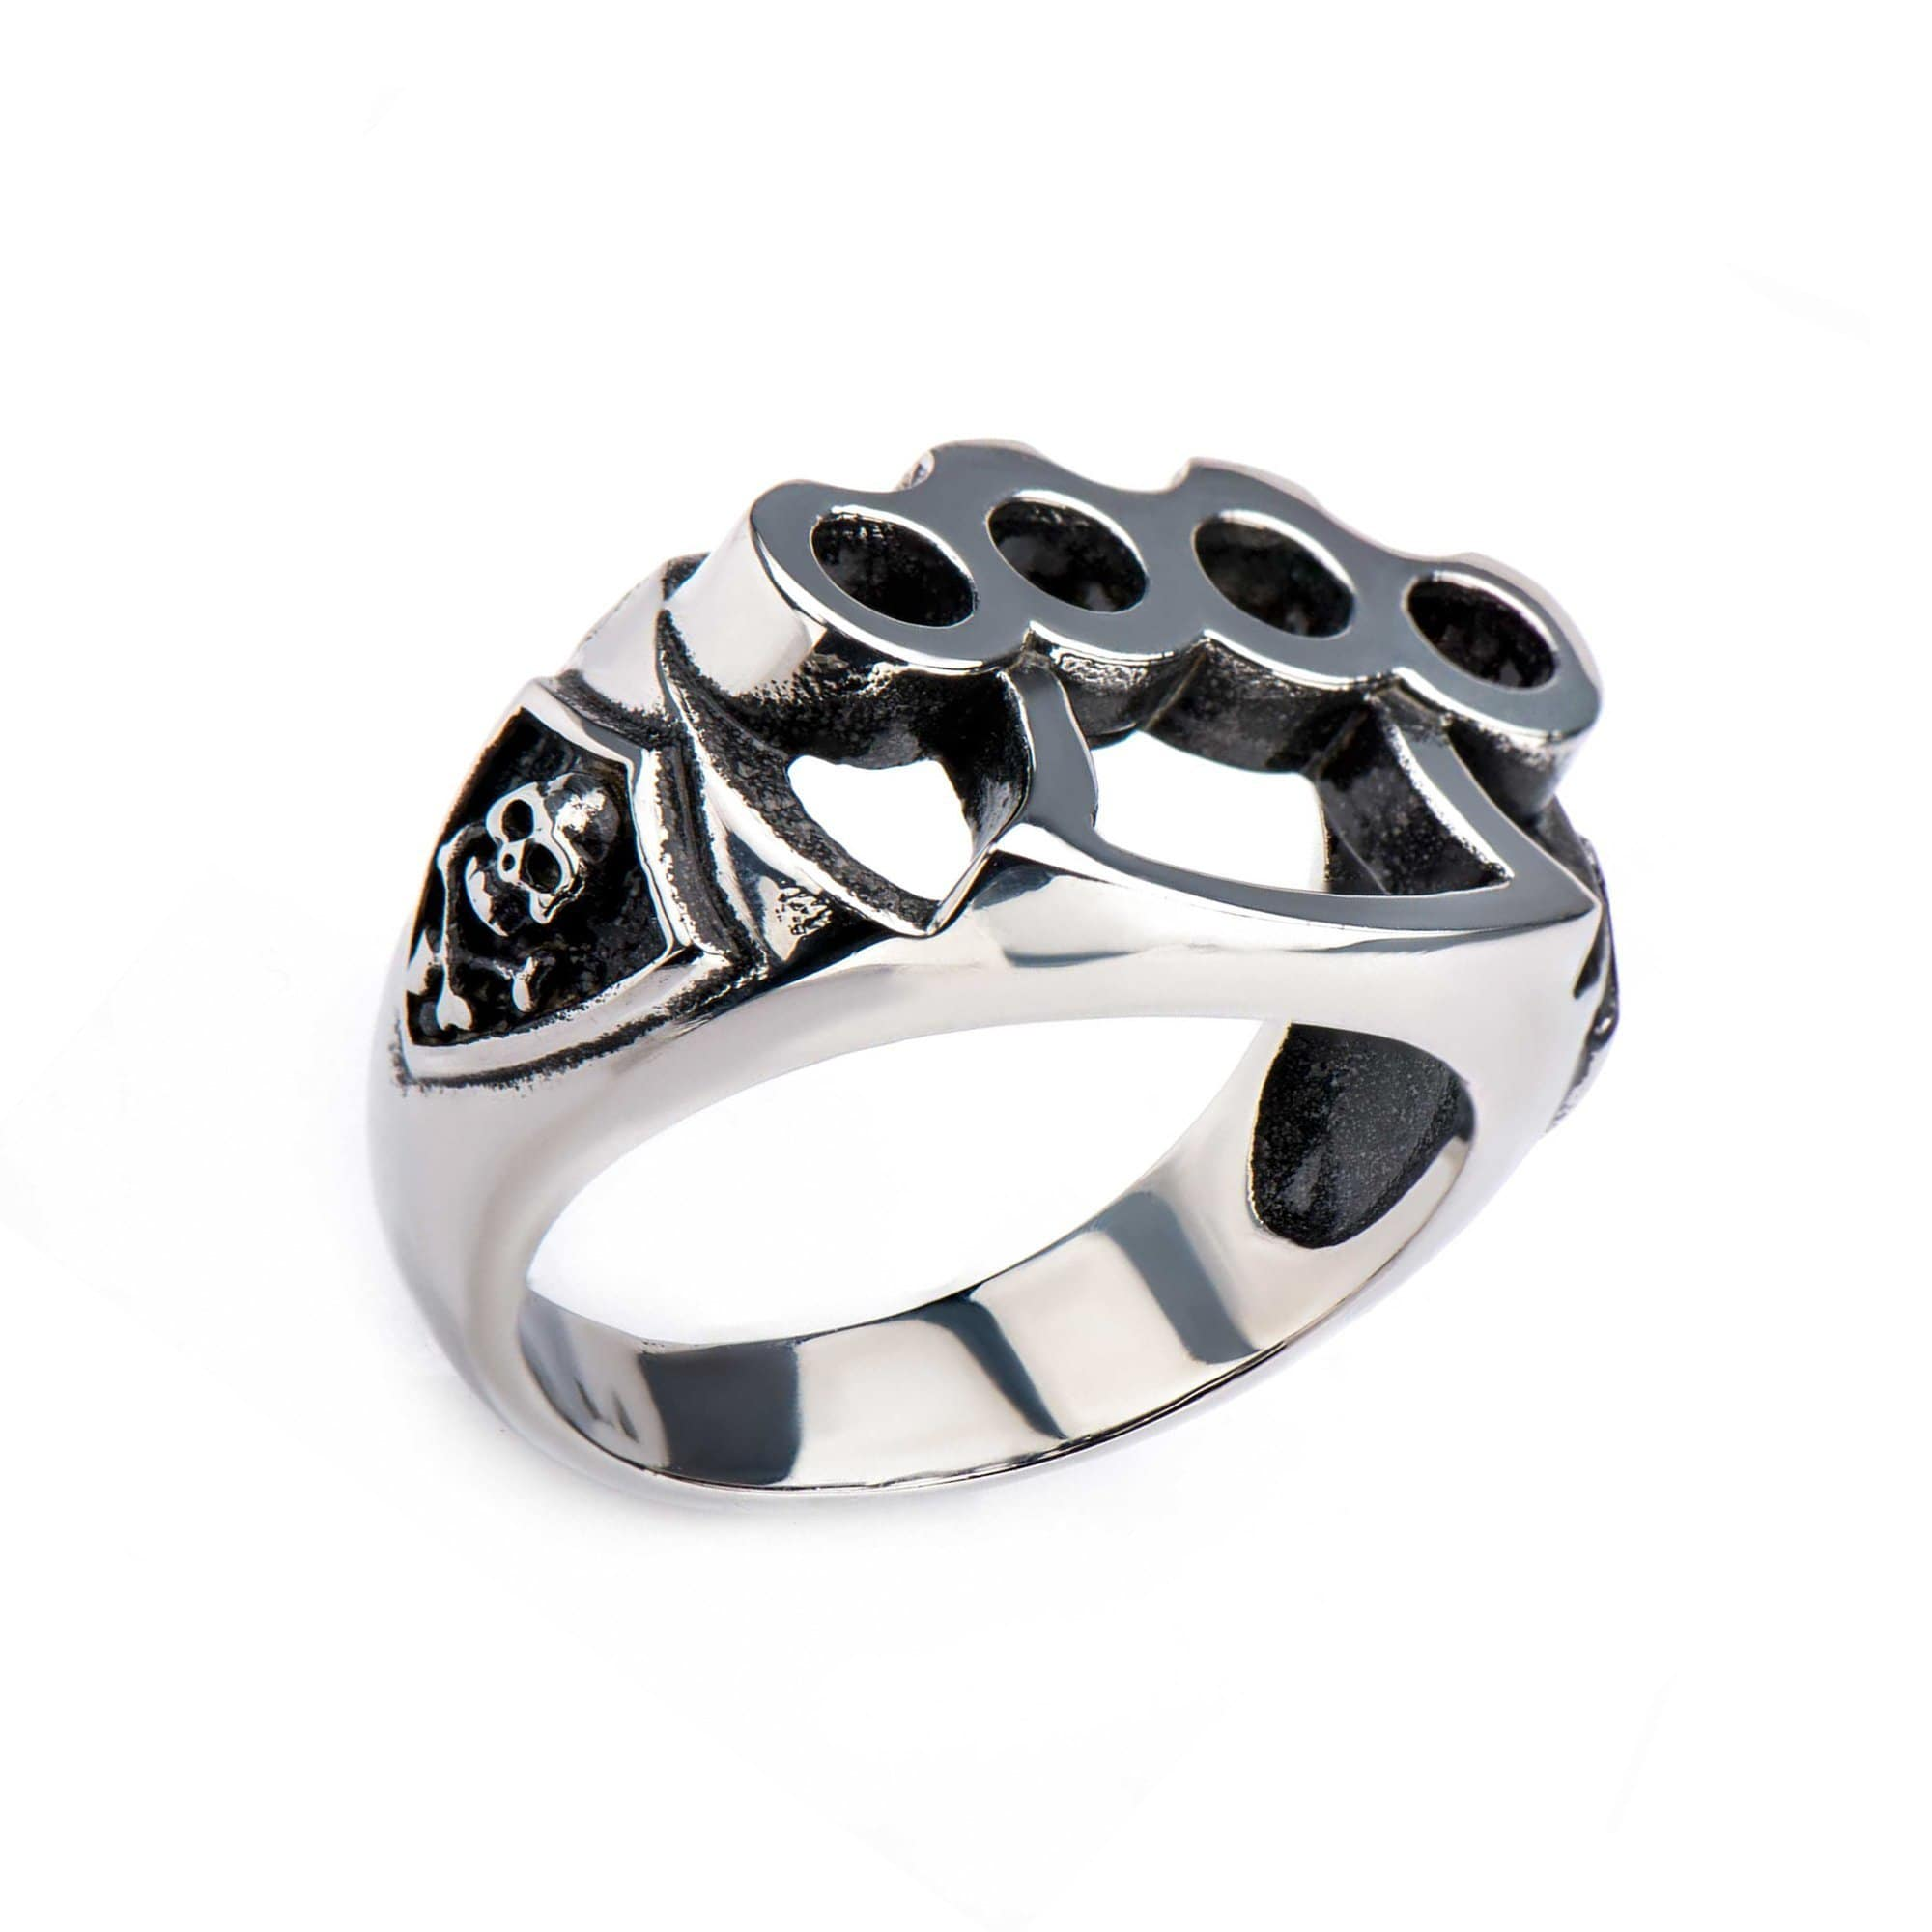 STAINLESS STEEL RING SZ11